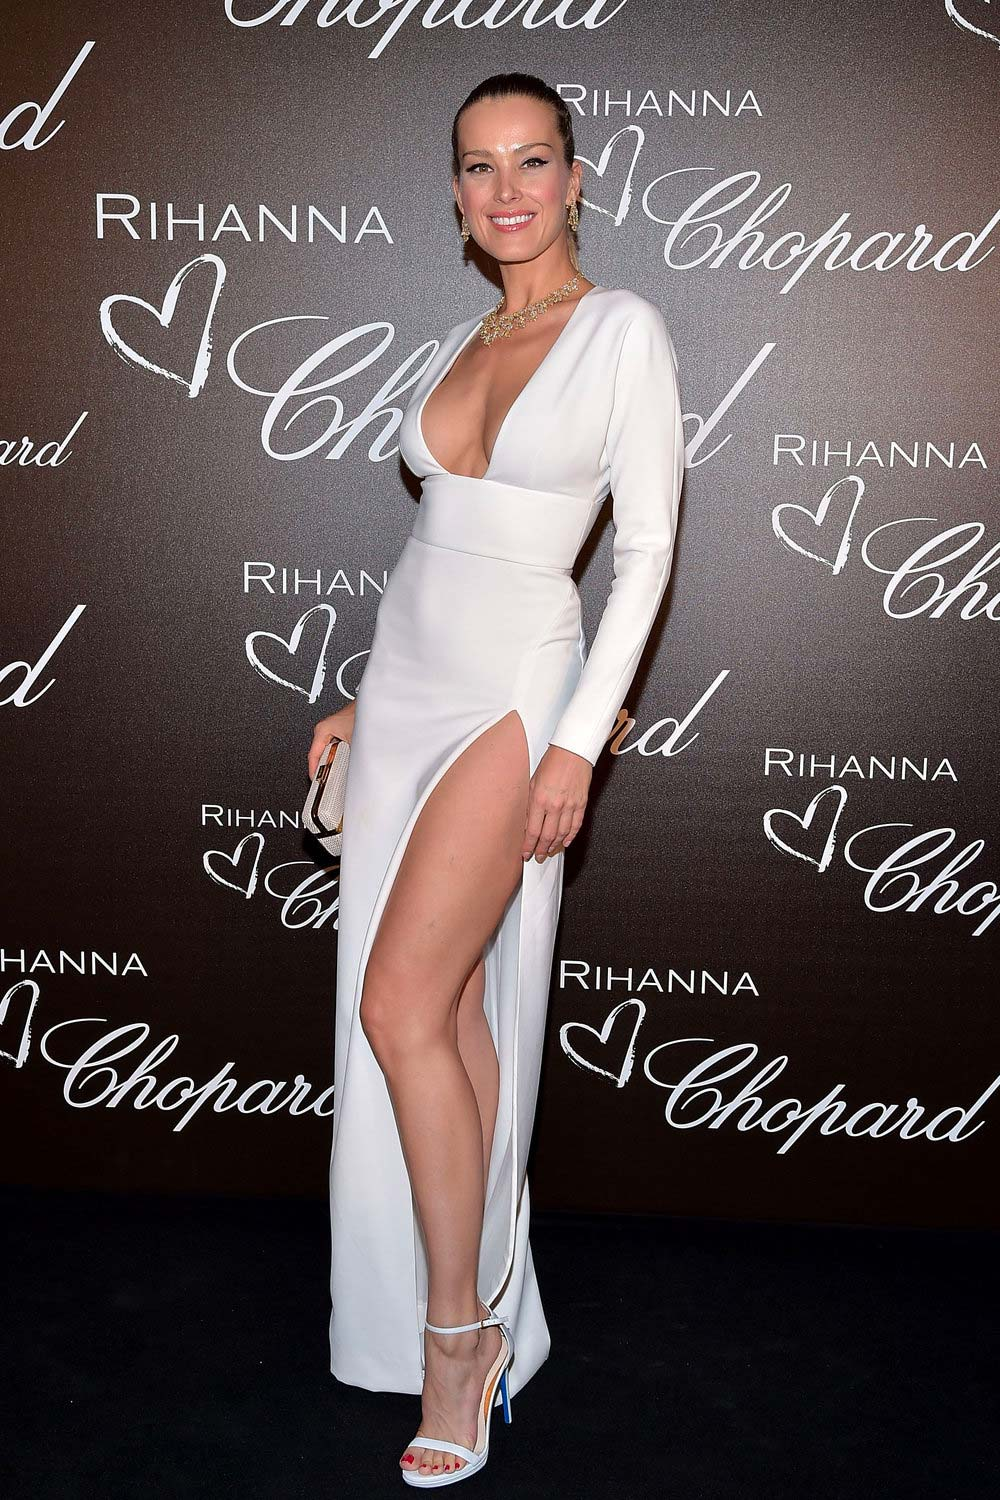 Cannes 2017 - Day 2 - Chopard & Rihanna dinner - Top Model & Chopard Ambassador Petra Nemcova